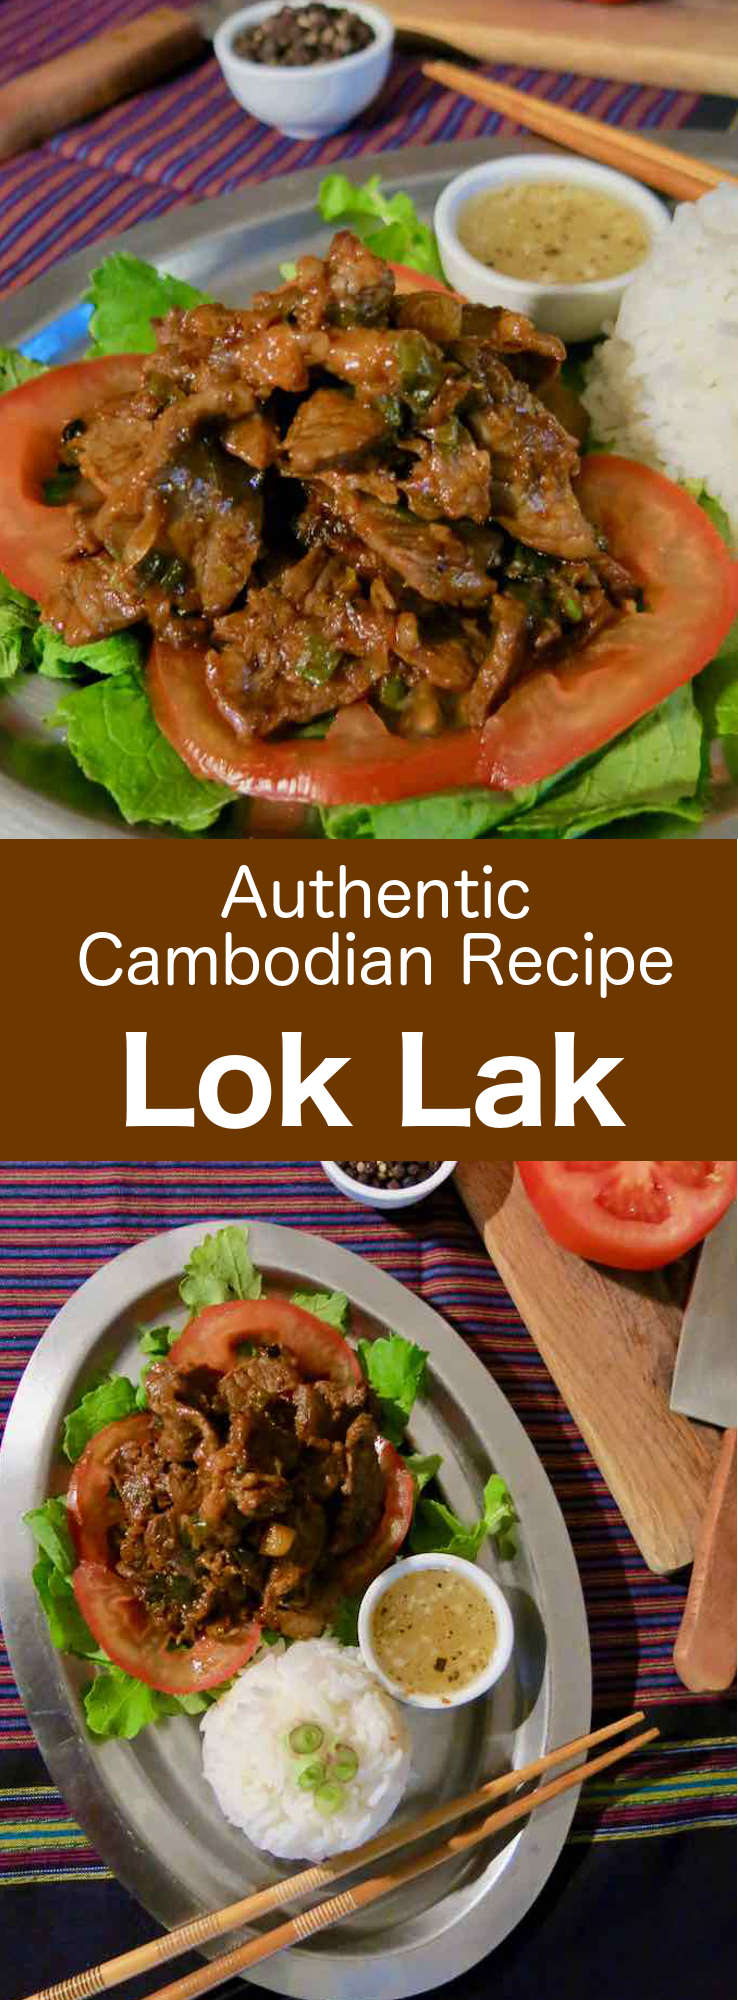 Lok lak is a dish of French and Chinese influence, which is popular in Cambodia and Vietnam. It is prepared with marinated and sautéed beef, served with rice or fries, and a salad. #Cambodian #CambodianRecipe #CambodianCuisine #AsianCuisine #AsianRecipe #WorldCuisine #196flavors